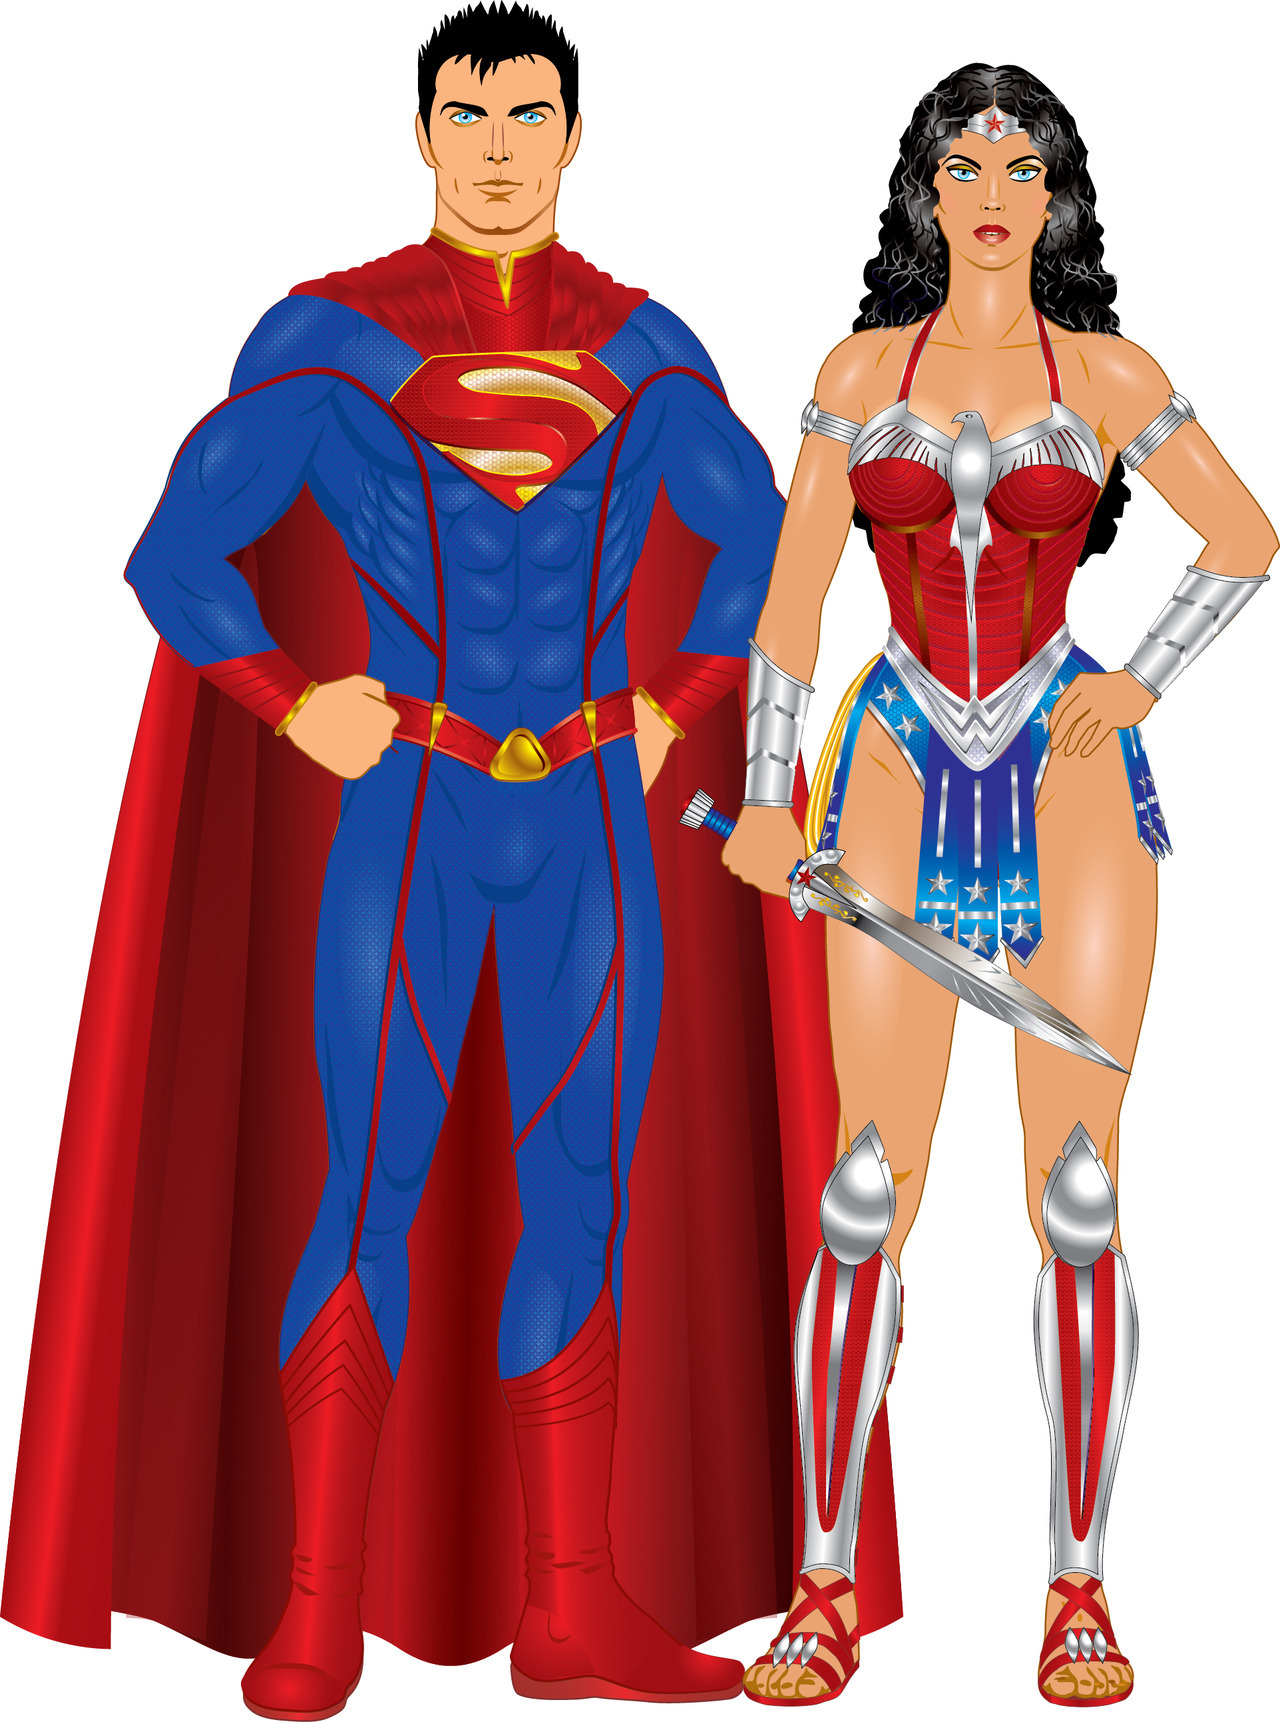 godstaff:  Superman and Wonder Woman - Earth 52  My take on the outfits of Diana and Clark.